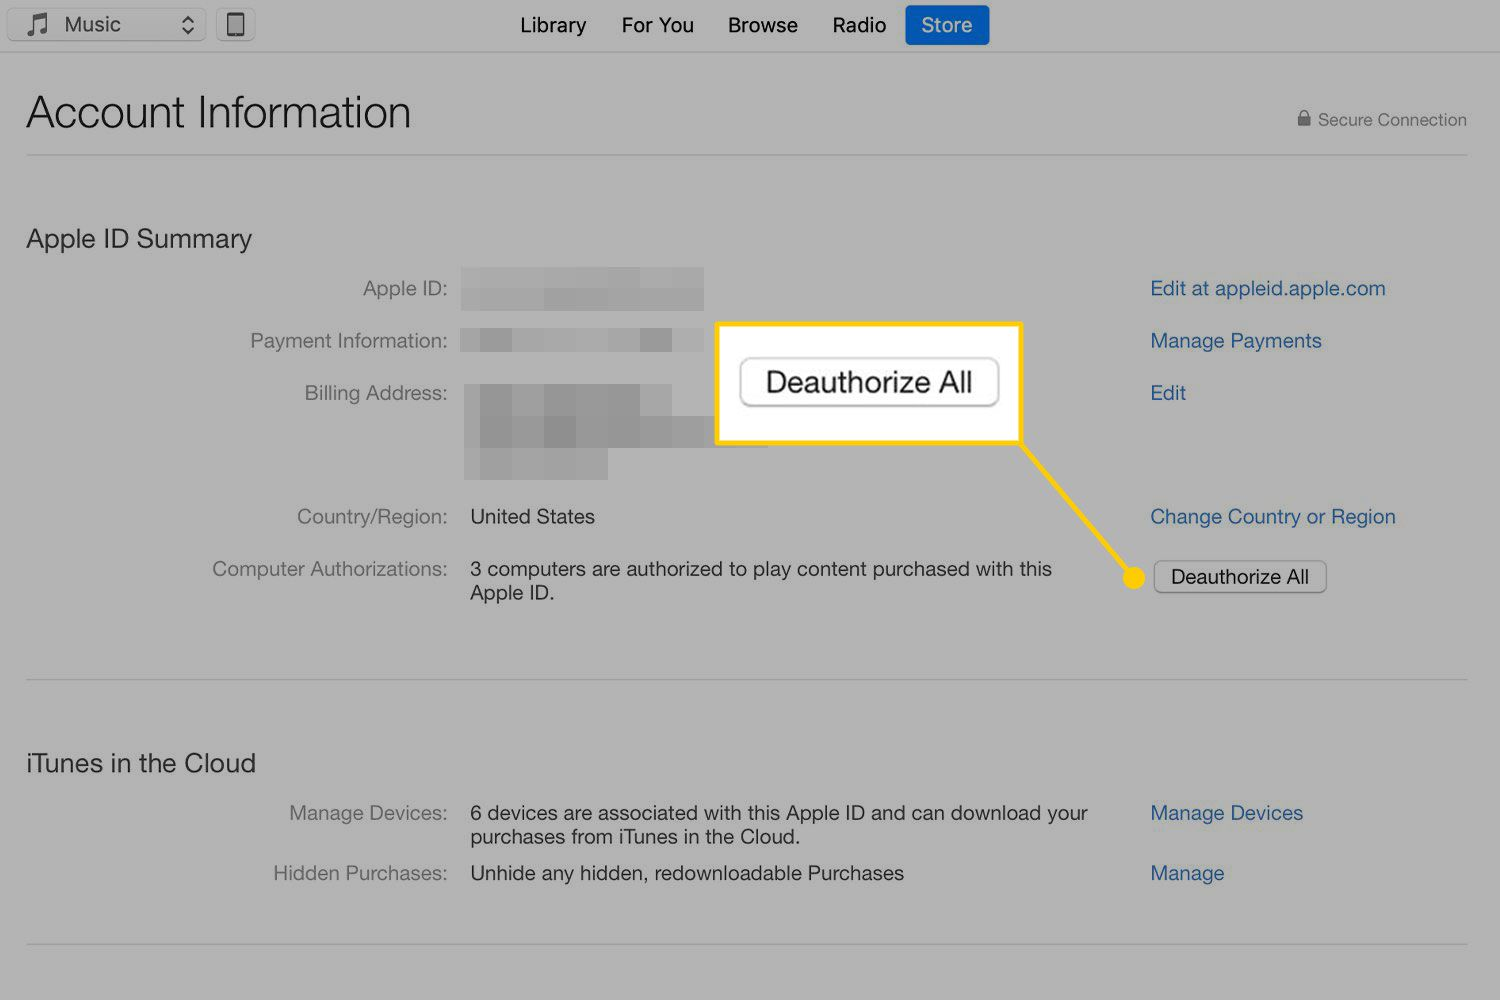 Deauthorize All button in iTunes Account Information